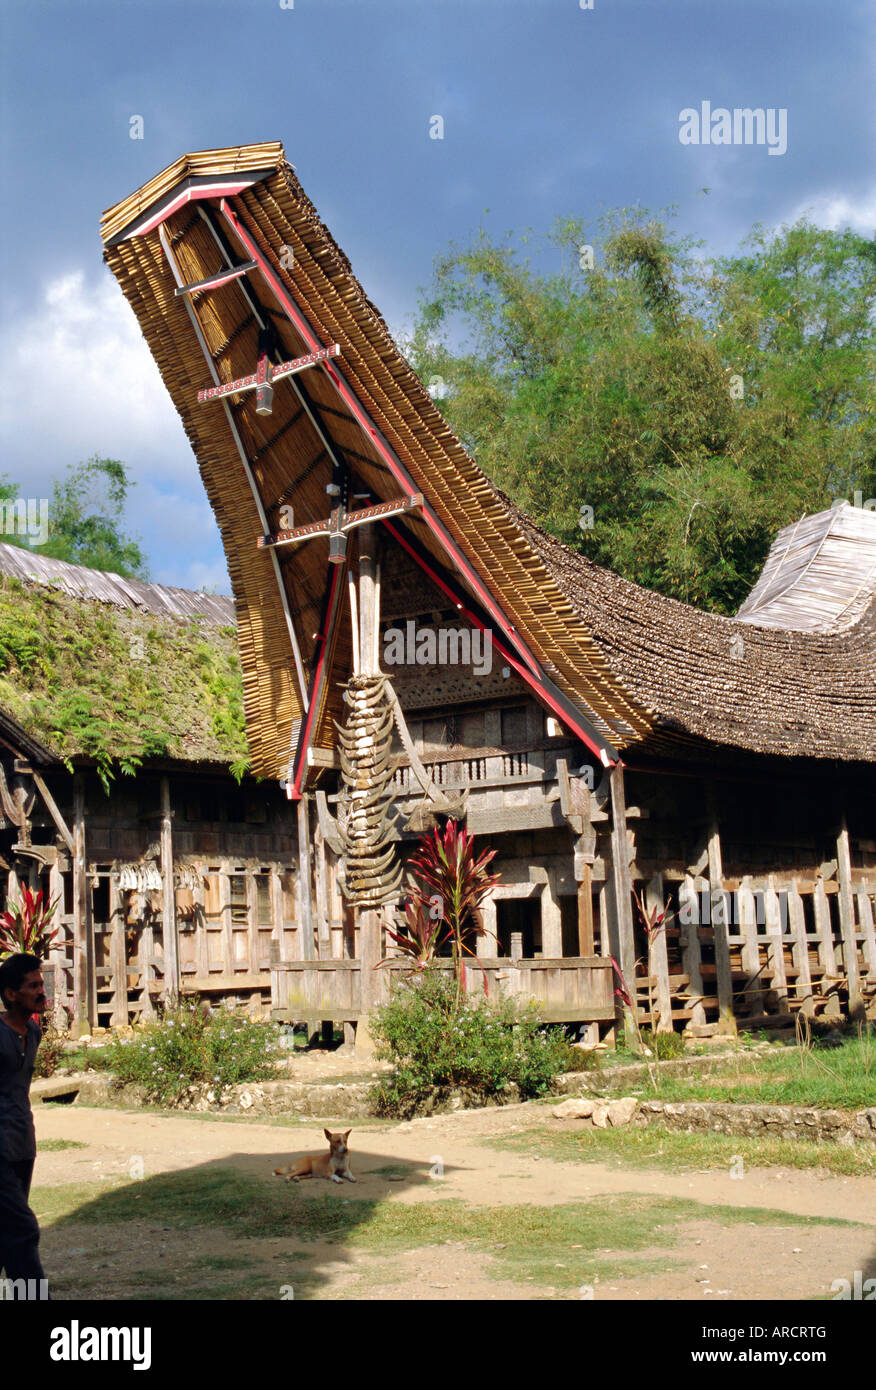 Typical house and granary, Toraja area, Sulawesi, Indonesia - Stock Image